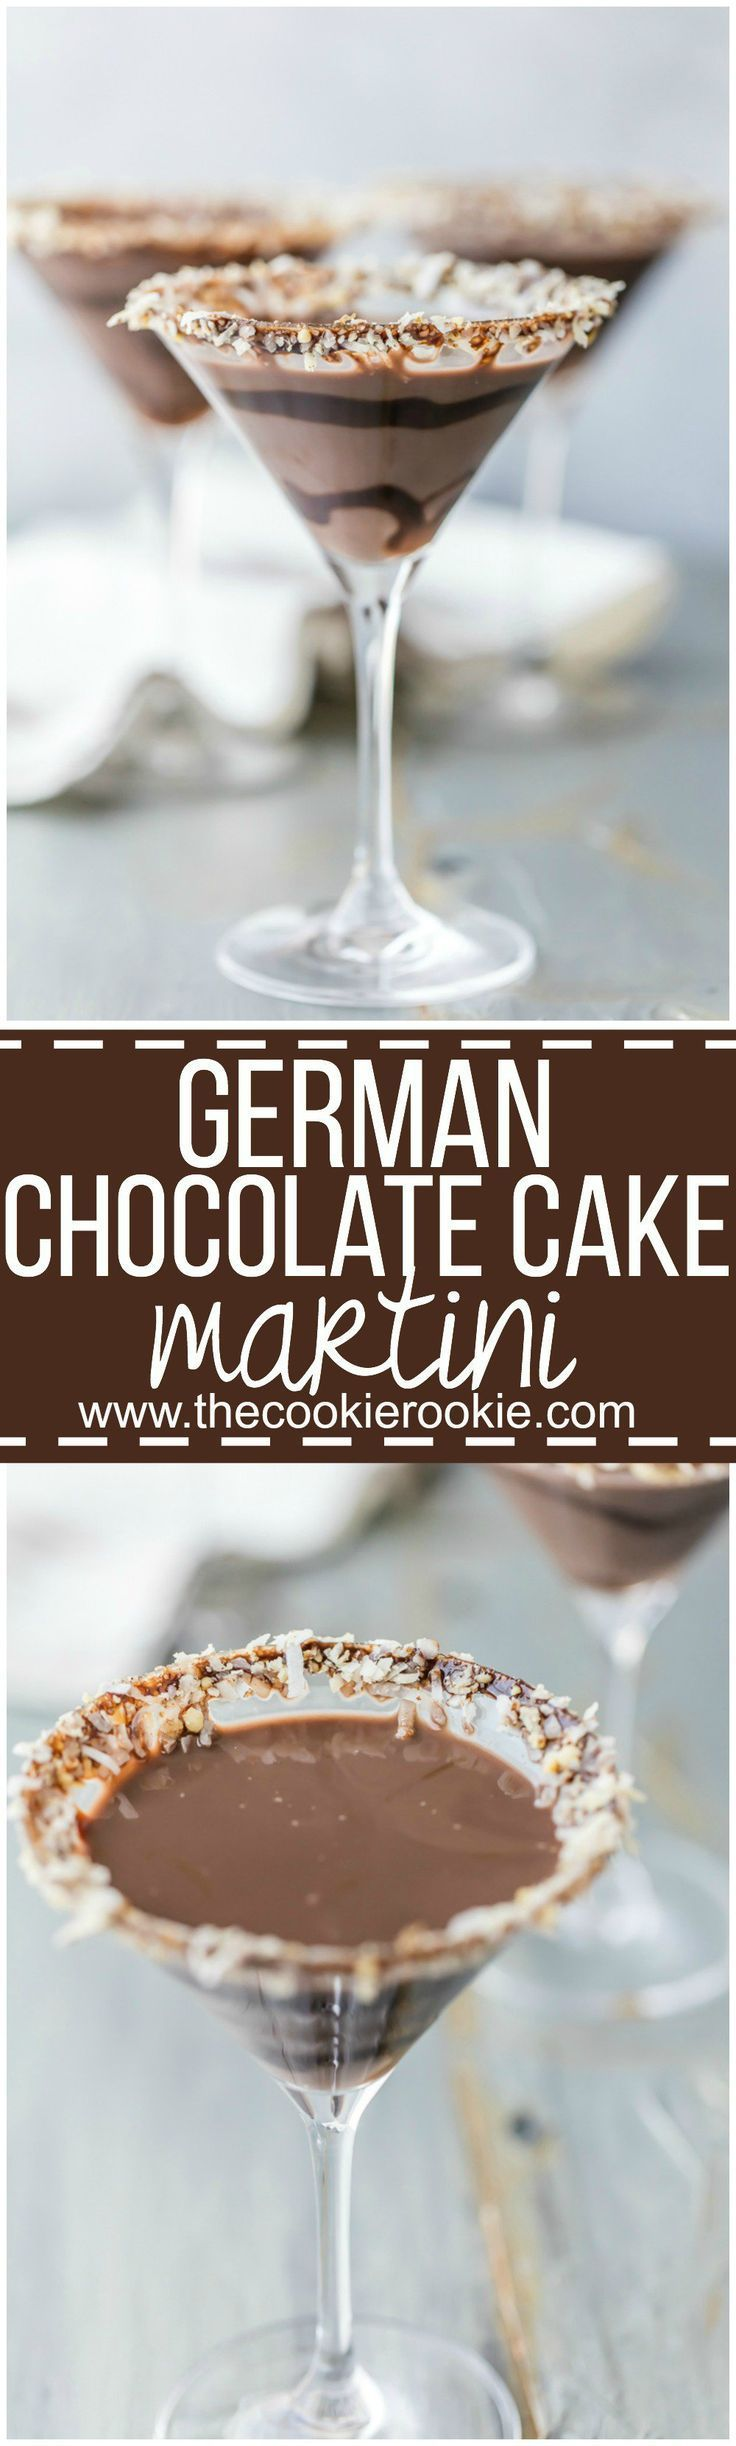 This German Chocolate Cake Martini is the perfect dessert cocktail